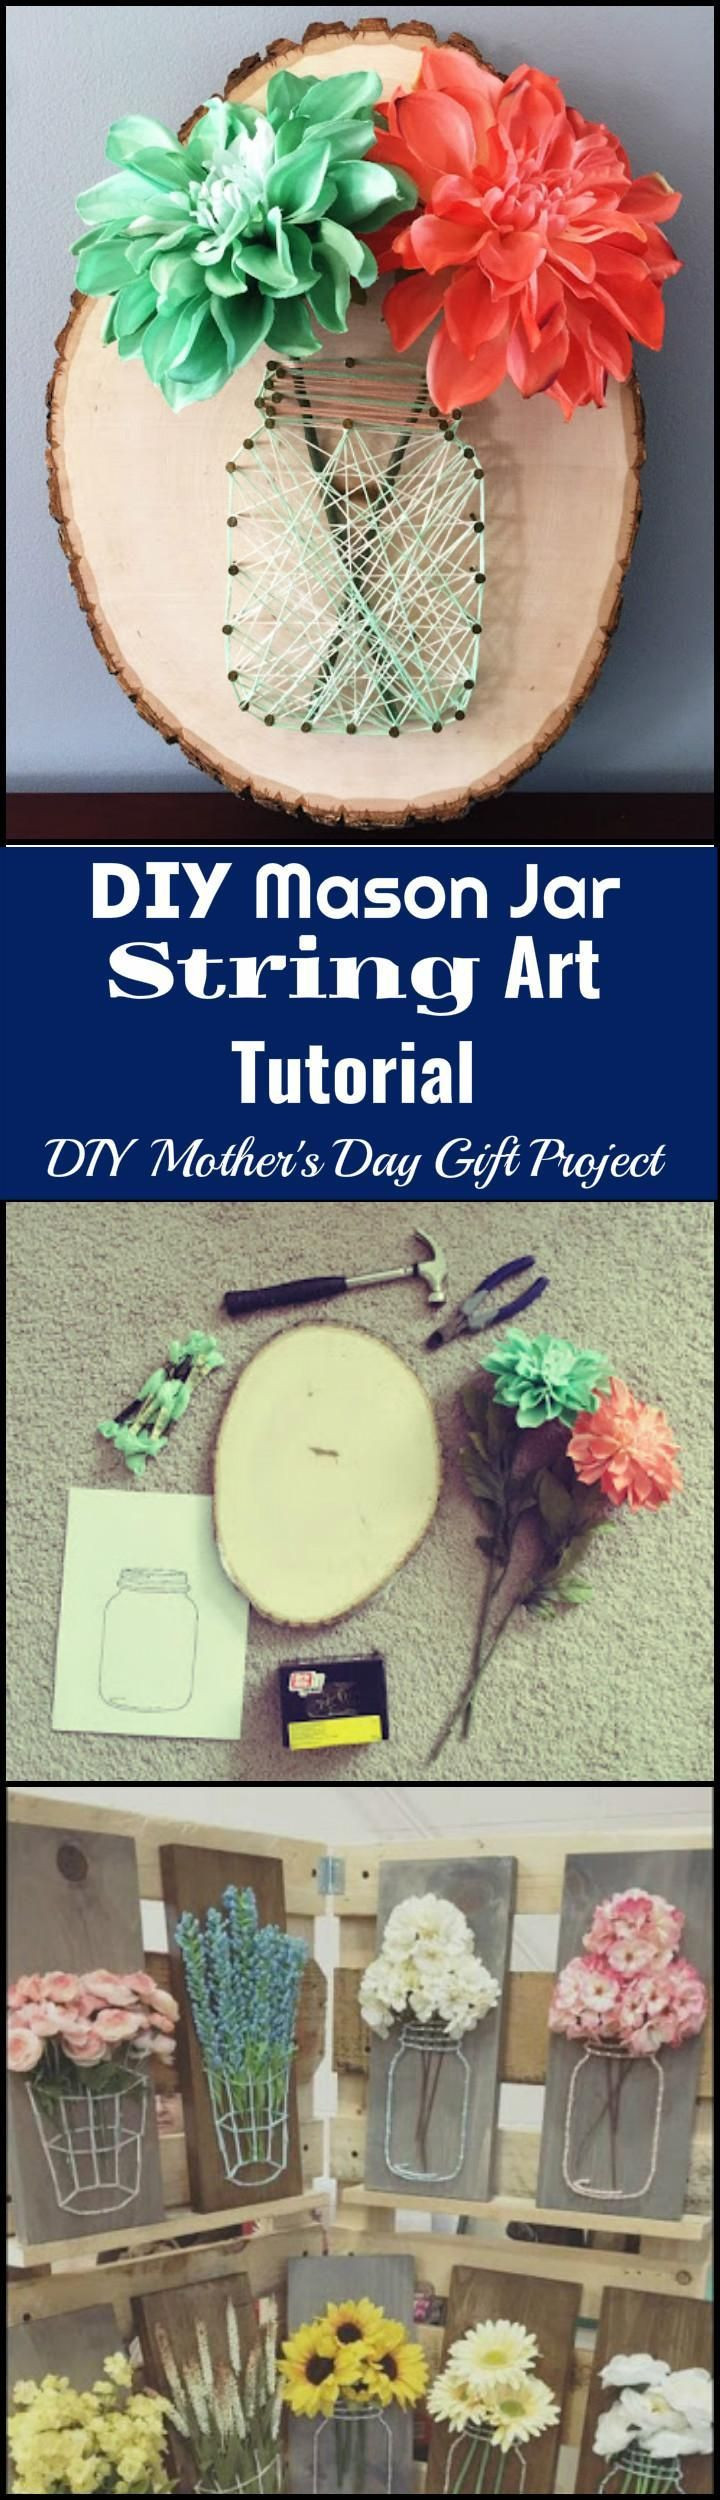 DIY Christmas Gifts For Mom From Daughter  Pin on diy